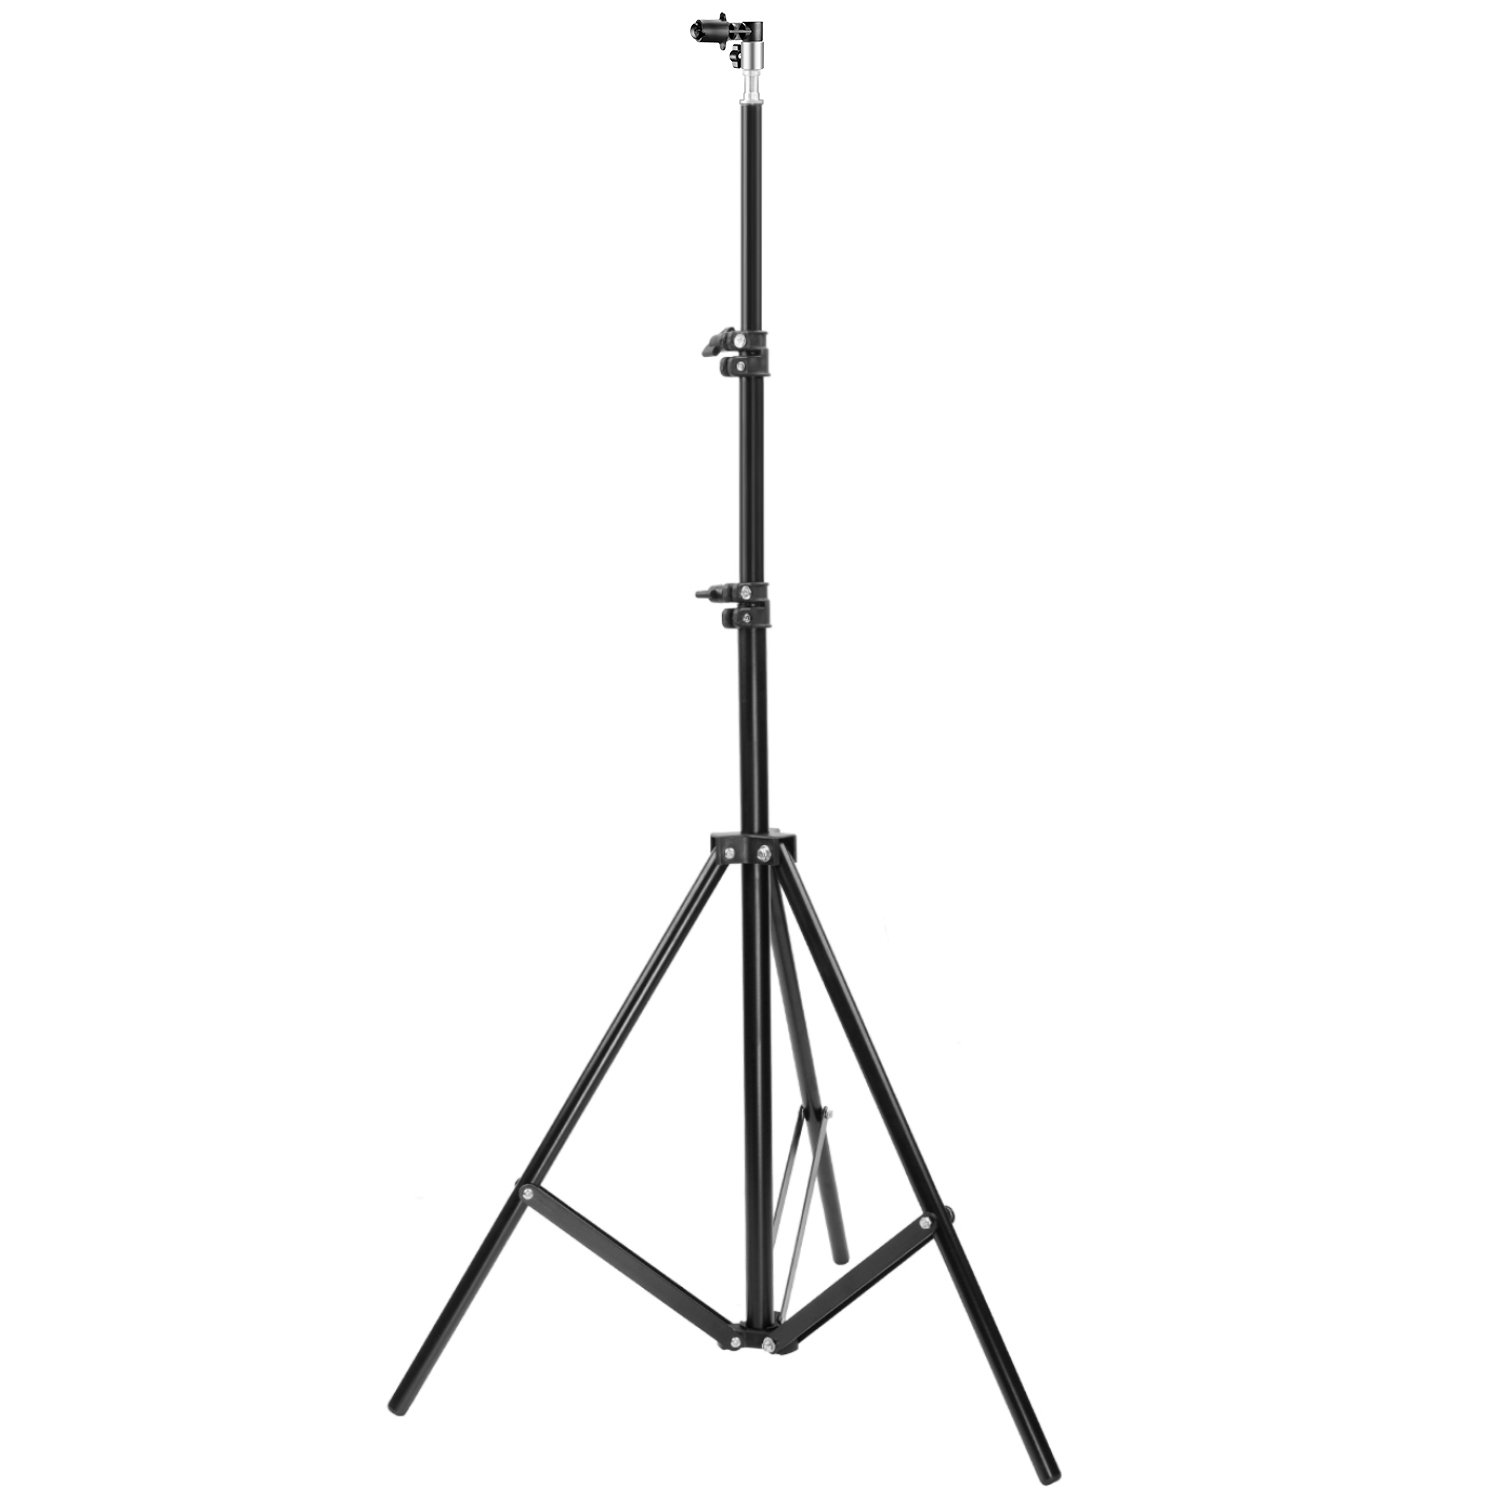 Neewer Photo Studio Background & Reflector Clip and 6ft/190cm Light Stand, Reflector not included